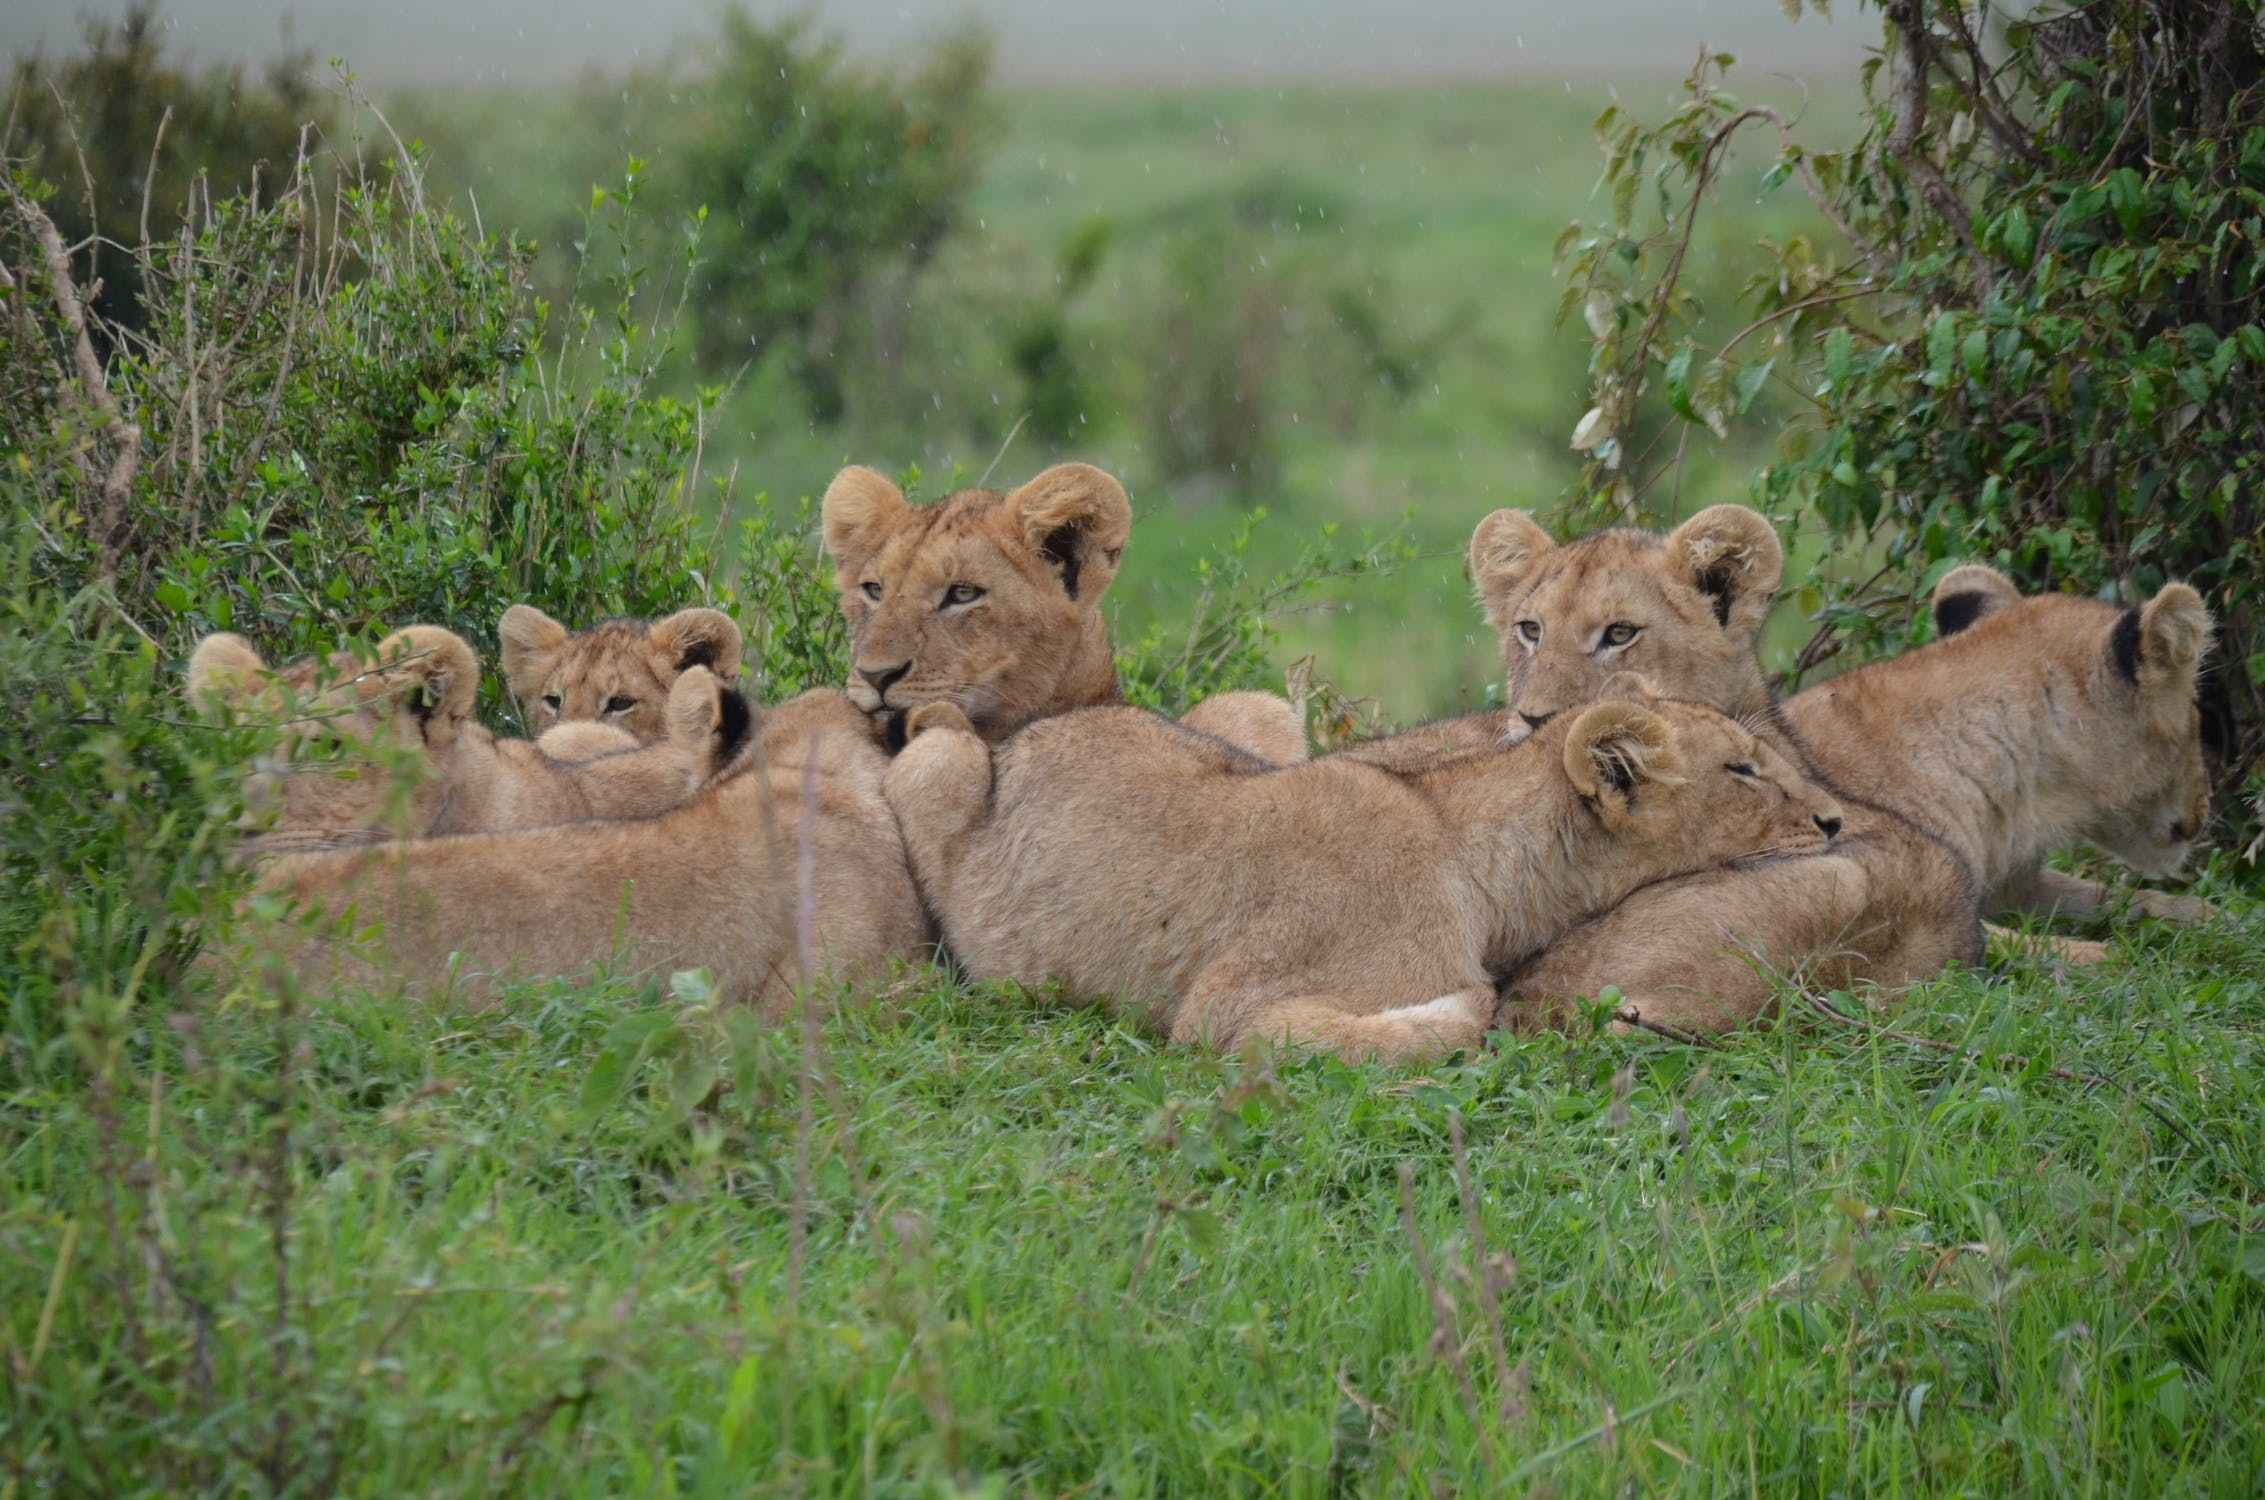 do lions eat their young cubs